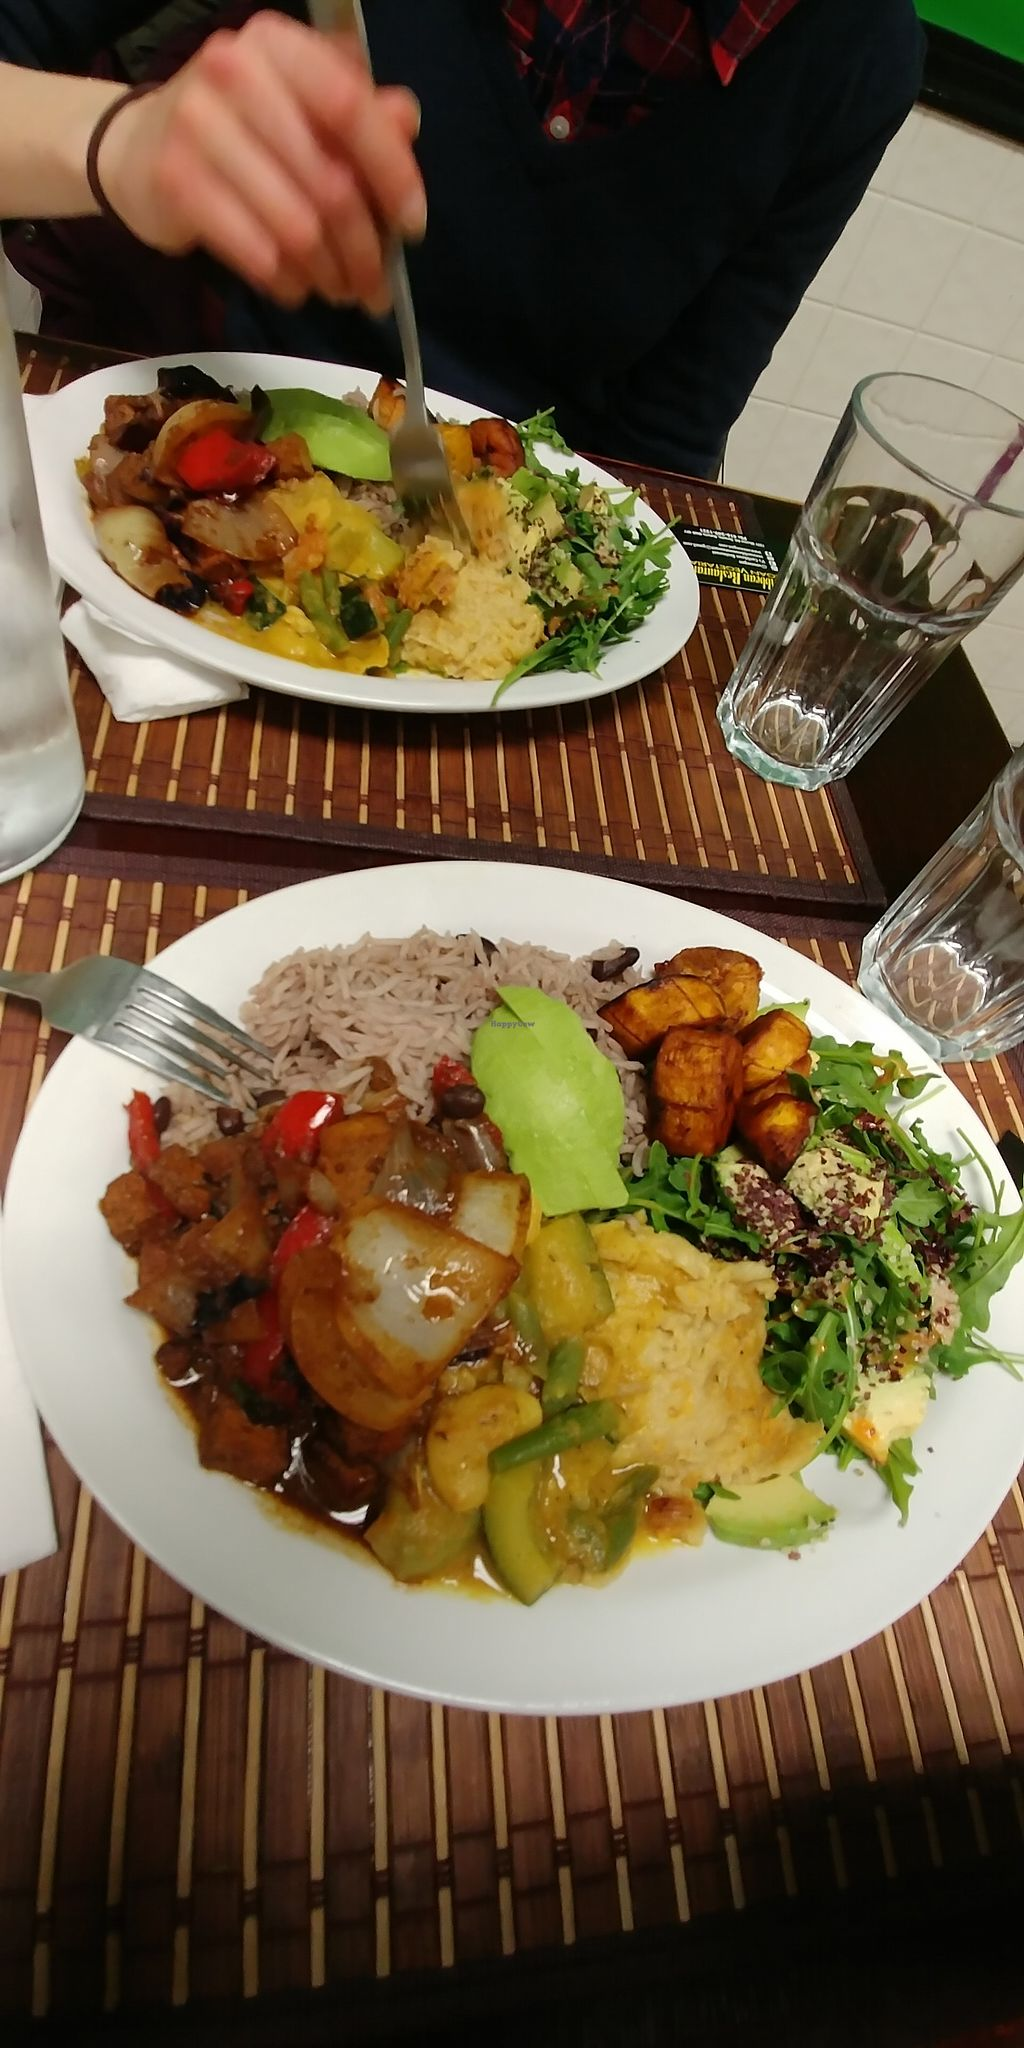 """Photo of V's Caribbean  by <a href=""""/members/profile/jonprc"""">jonprc</a> <br/>A full plate at V's <br/> February 25, 2018  - <a href='/contact/abuse/image/57759/363421'>Report</a>"""